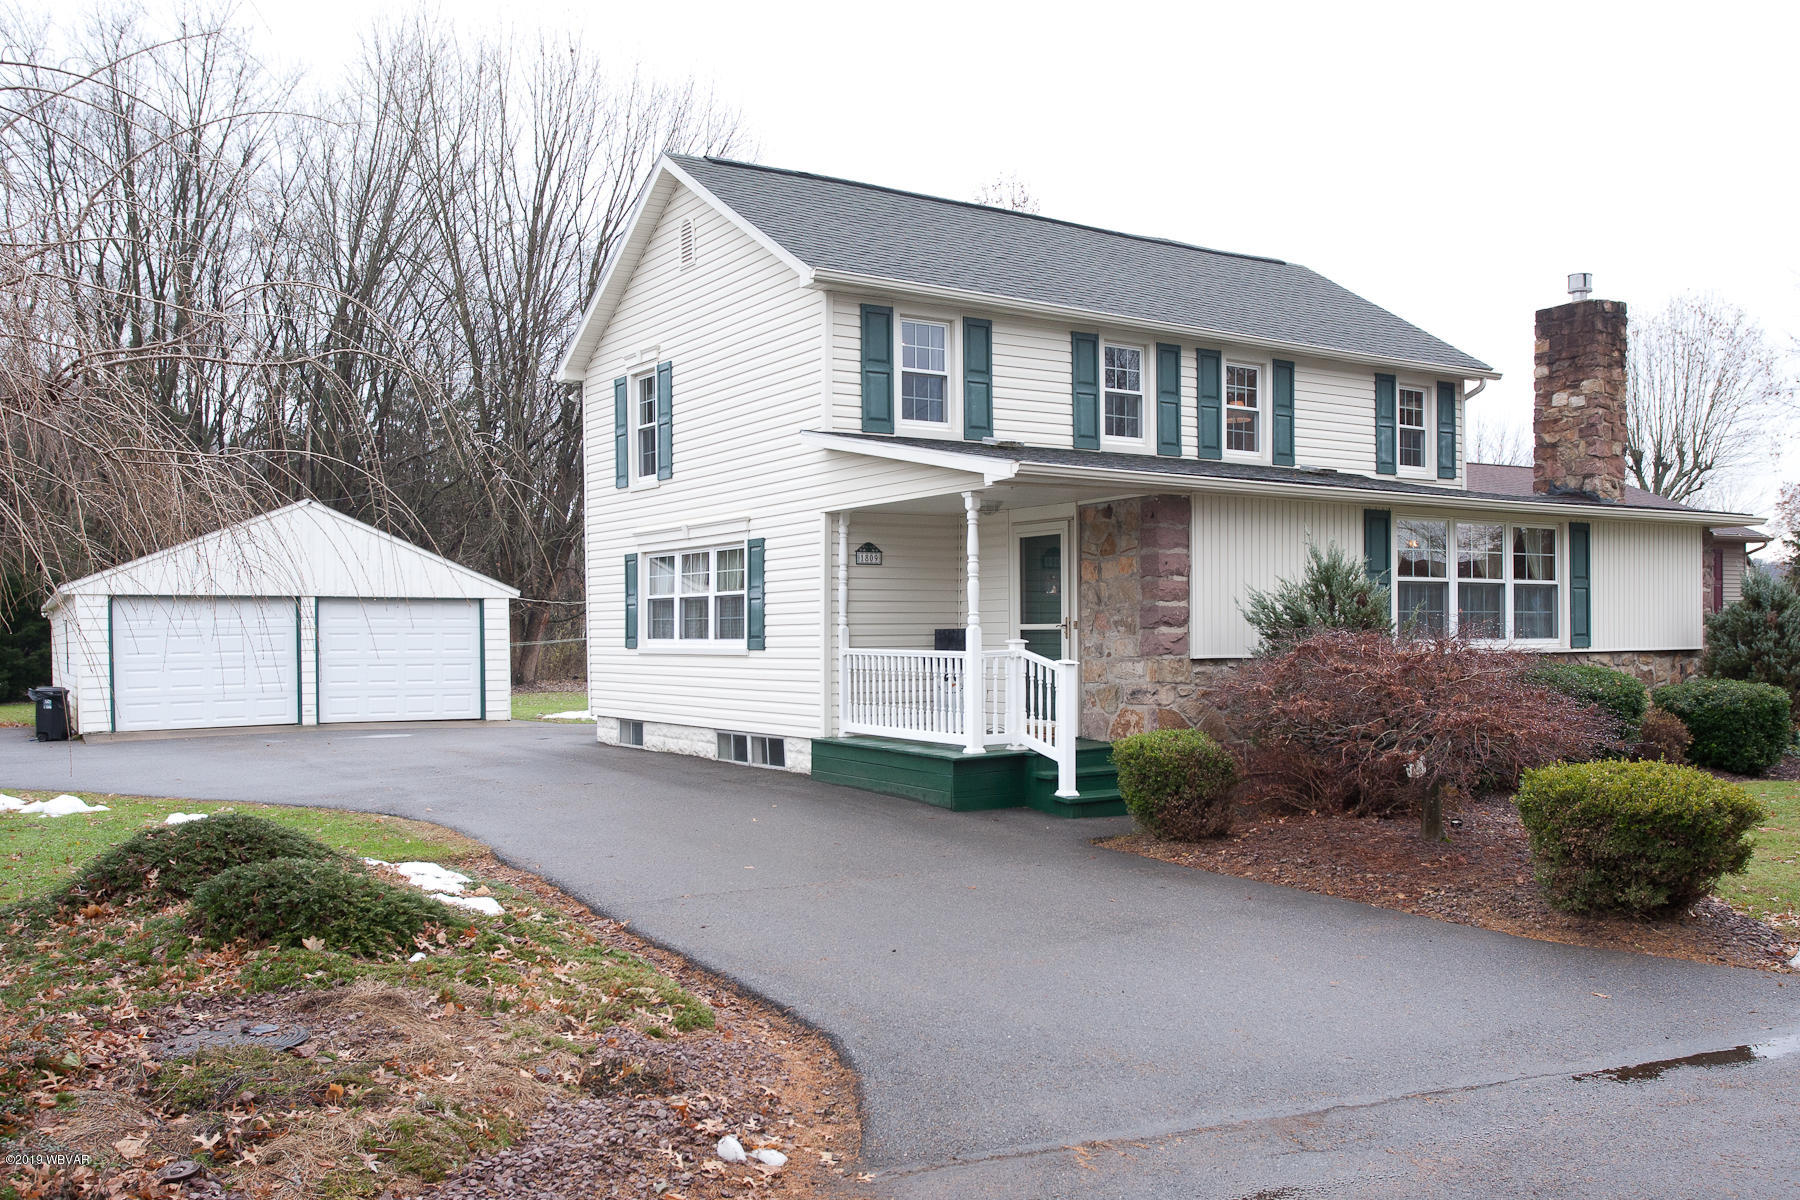 1809 SHOLDER AVENUE,Williamsport,PA 17701,4 Bedrooms Bedrooms,2 BathroomsBathrooms,Residential,SHOLDER,WB-86184